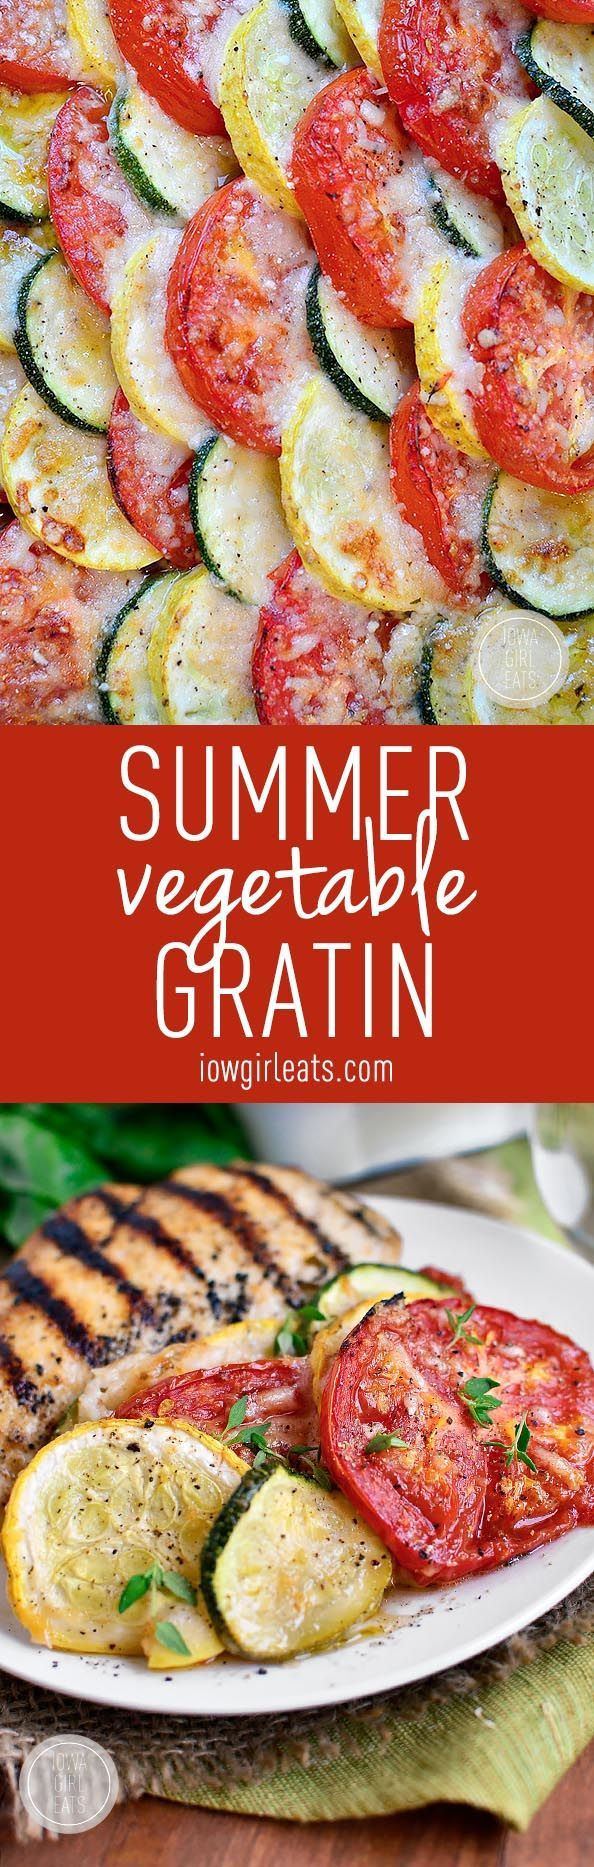 Fresh summer vegetables are sliced, baked, and then layered under a blanket of parmesan cheese in this simple Summer Vegetable Gratin side dish! #glutenfree | iowagirleats.com